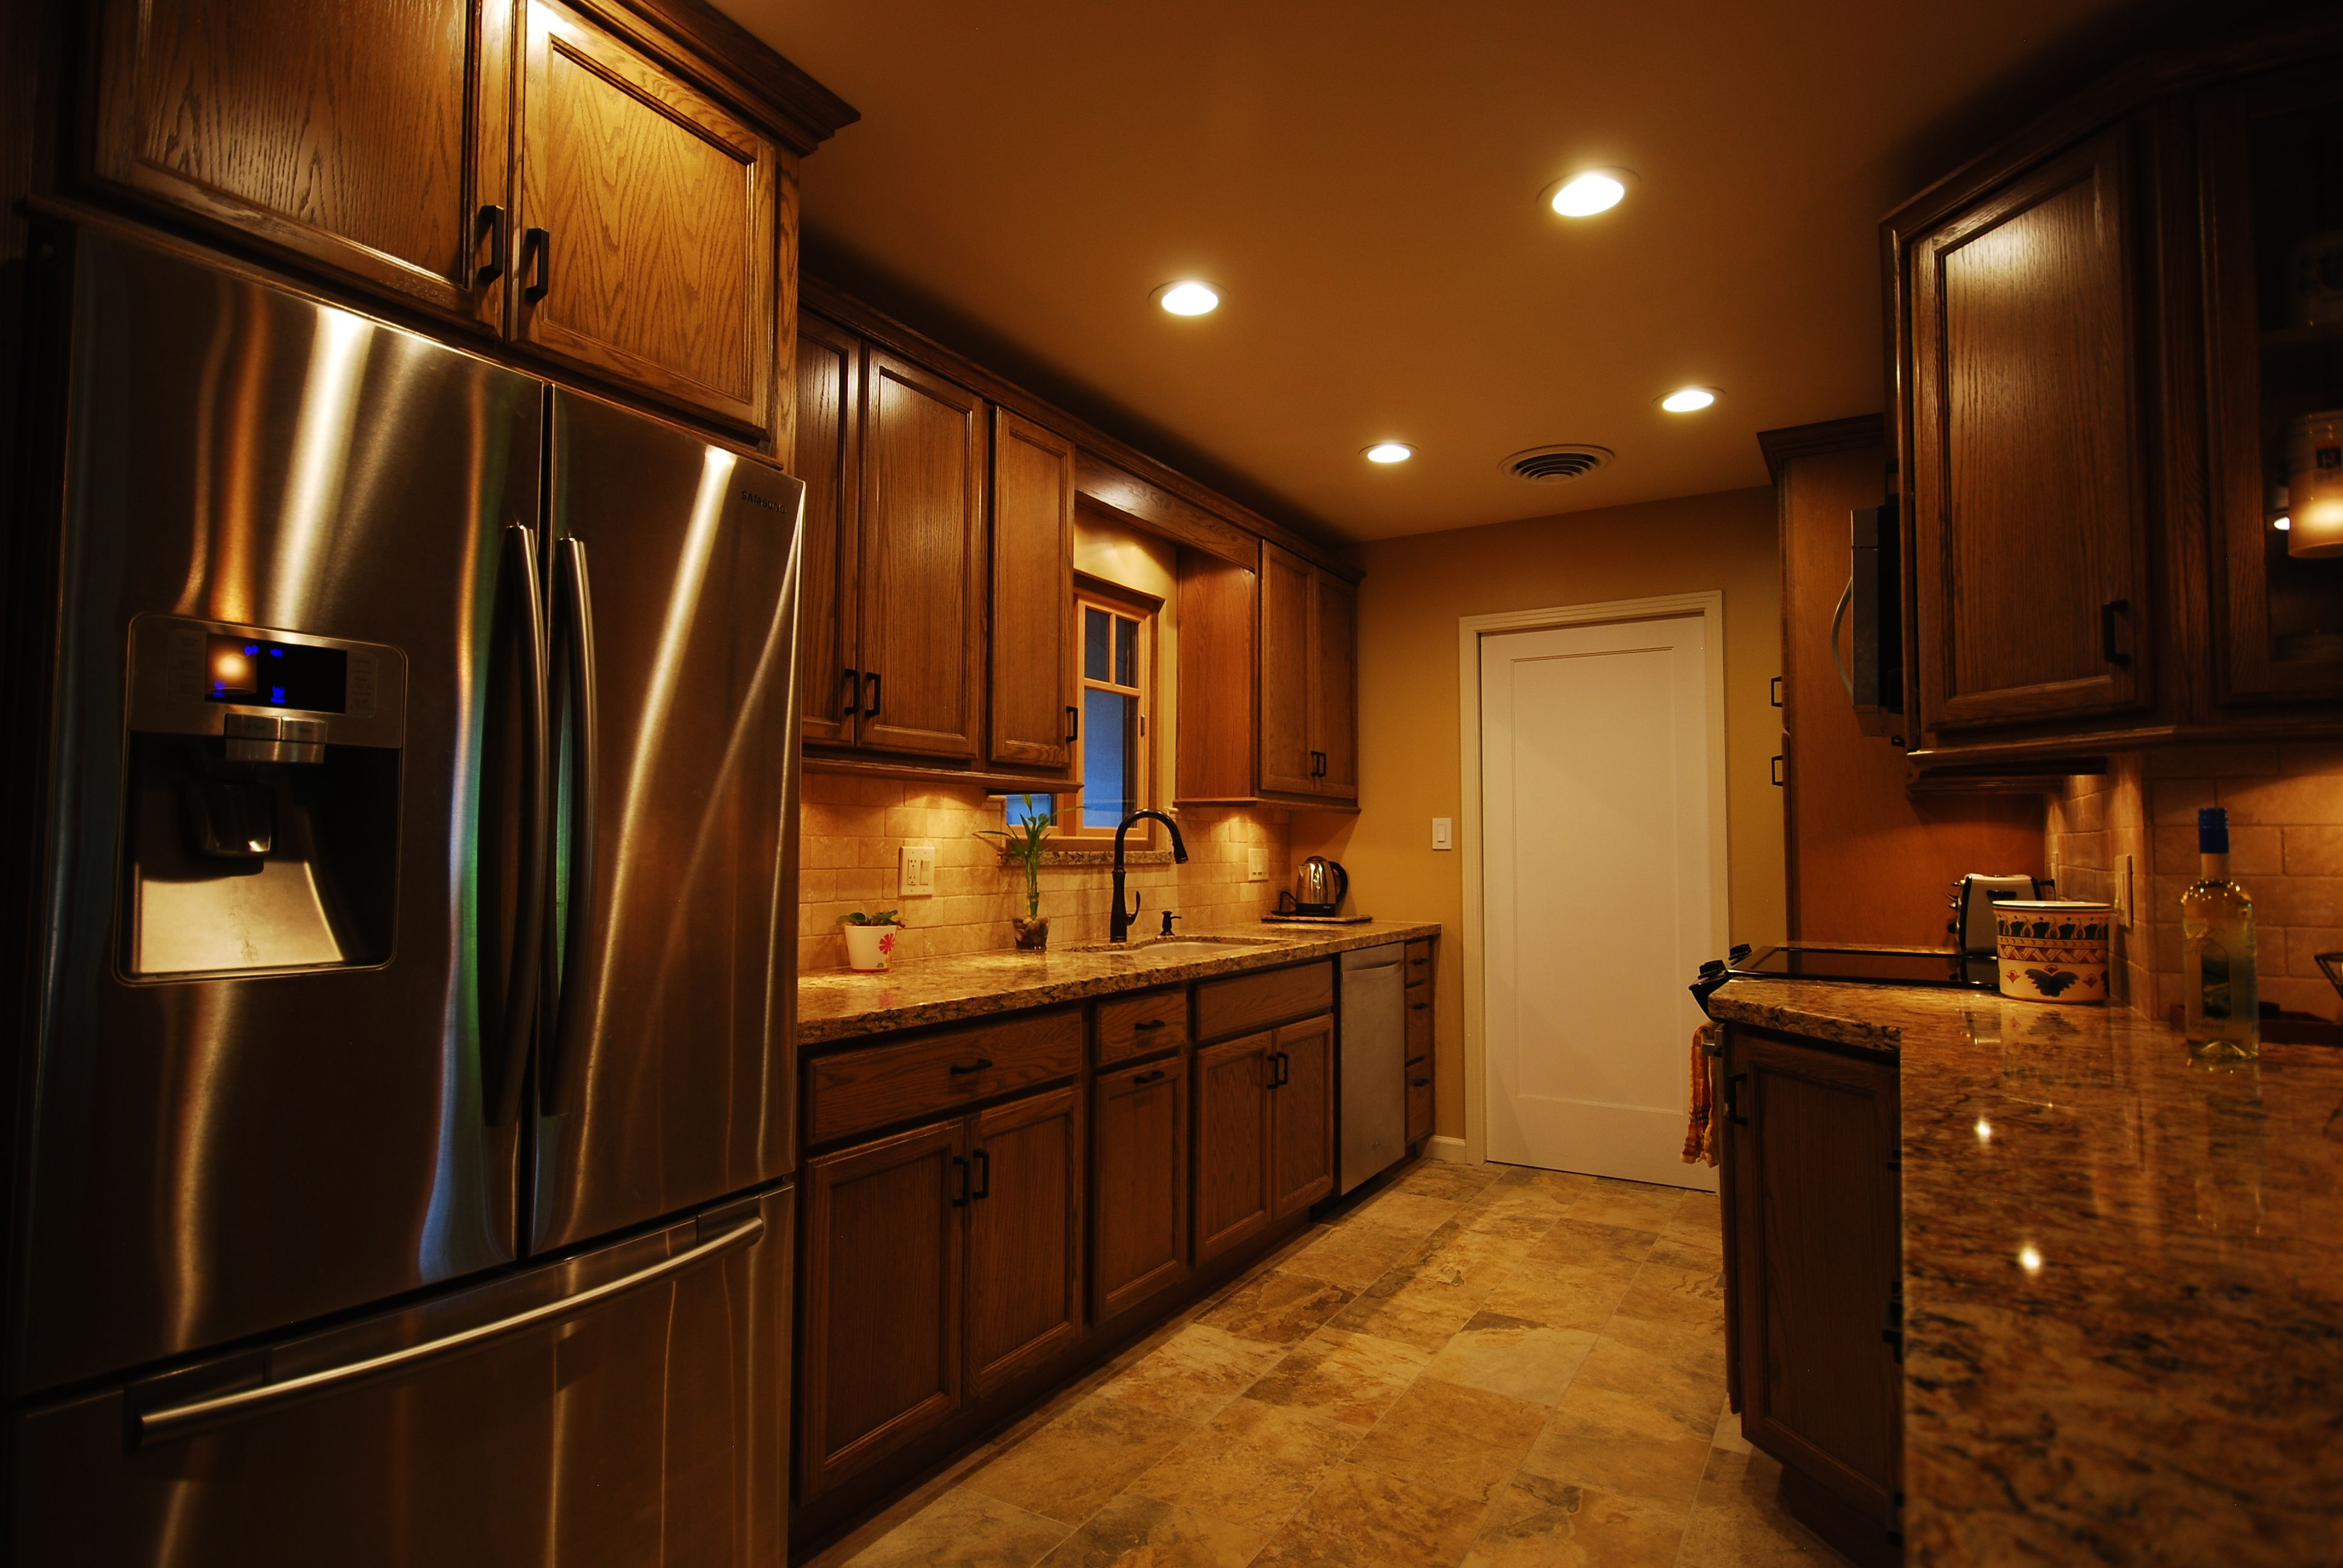 Bakersfield Kitchen And Bathroom Cabinets And Design Blue River Cabinetry And Constructi Kitchen Cabinets In Bathroom White Kitchen Remodeling Kitchen Remodel